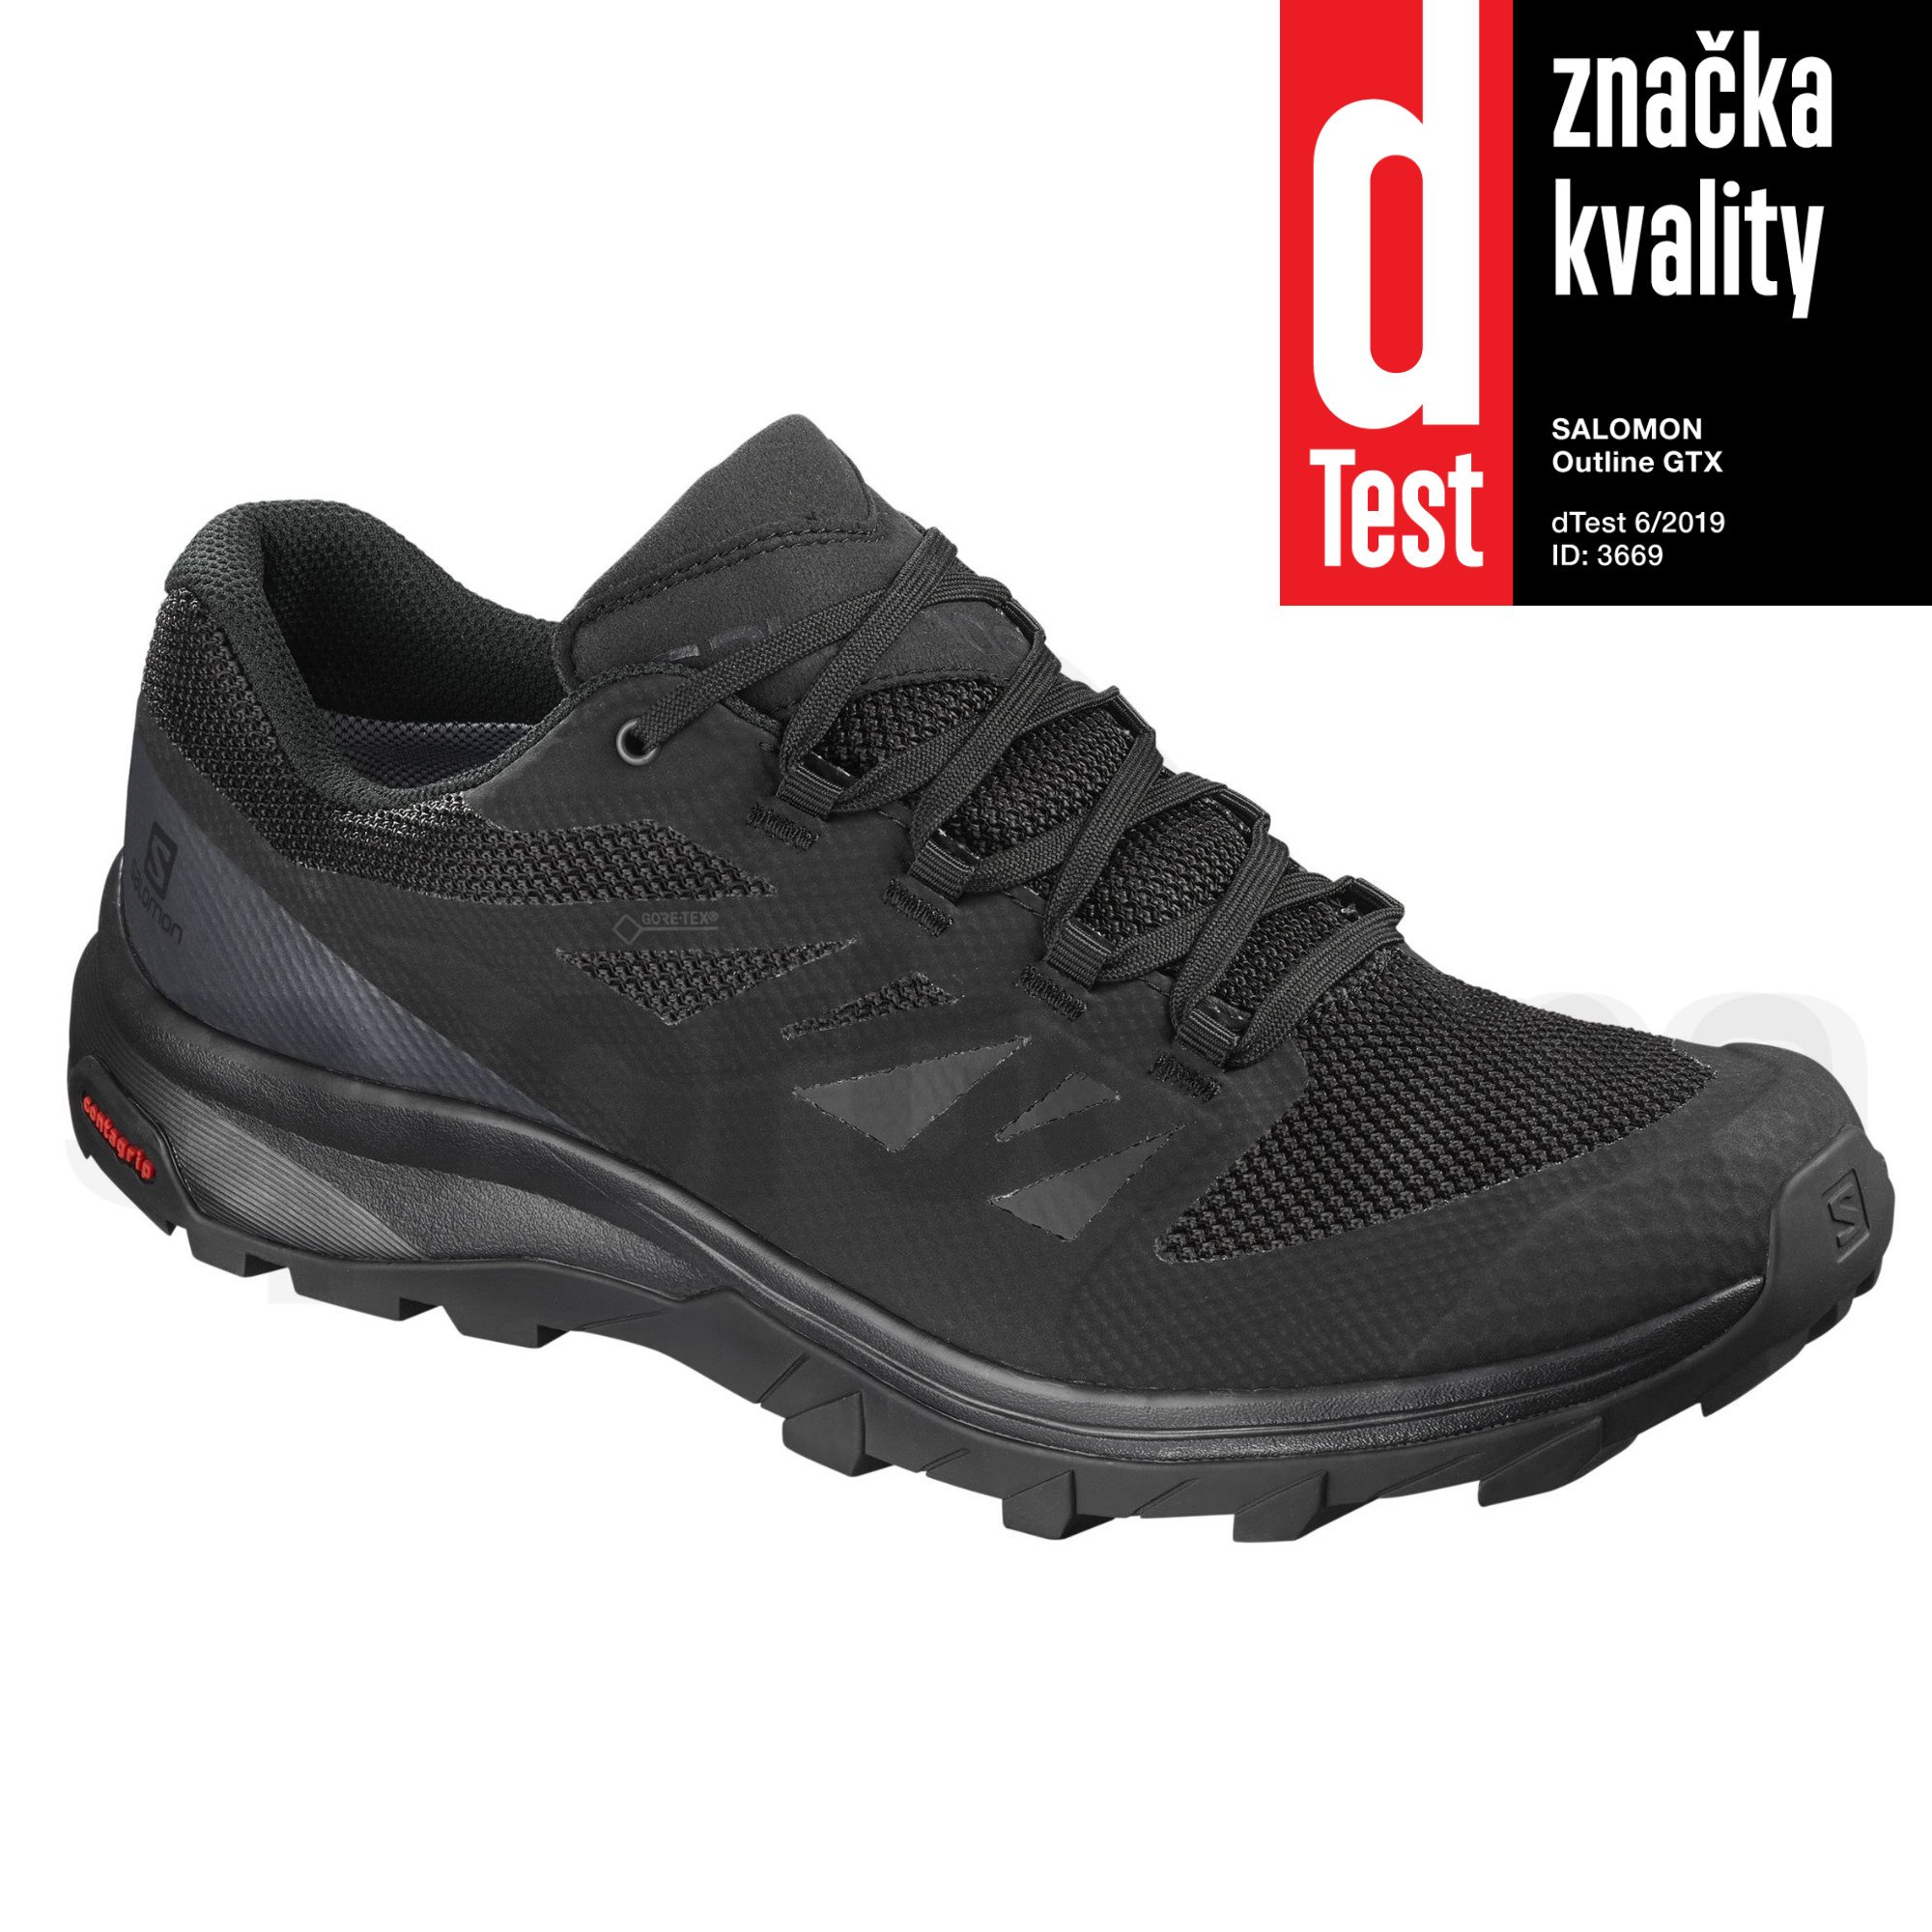 l40477000-0-m-outline-gtx-black-jpg-originalk